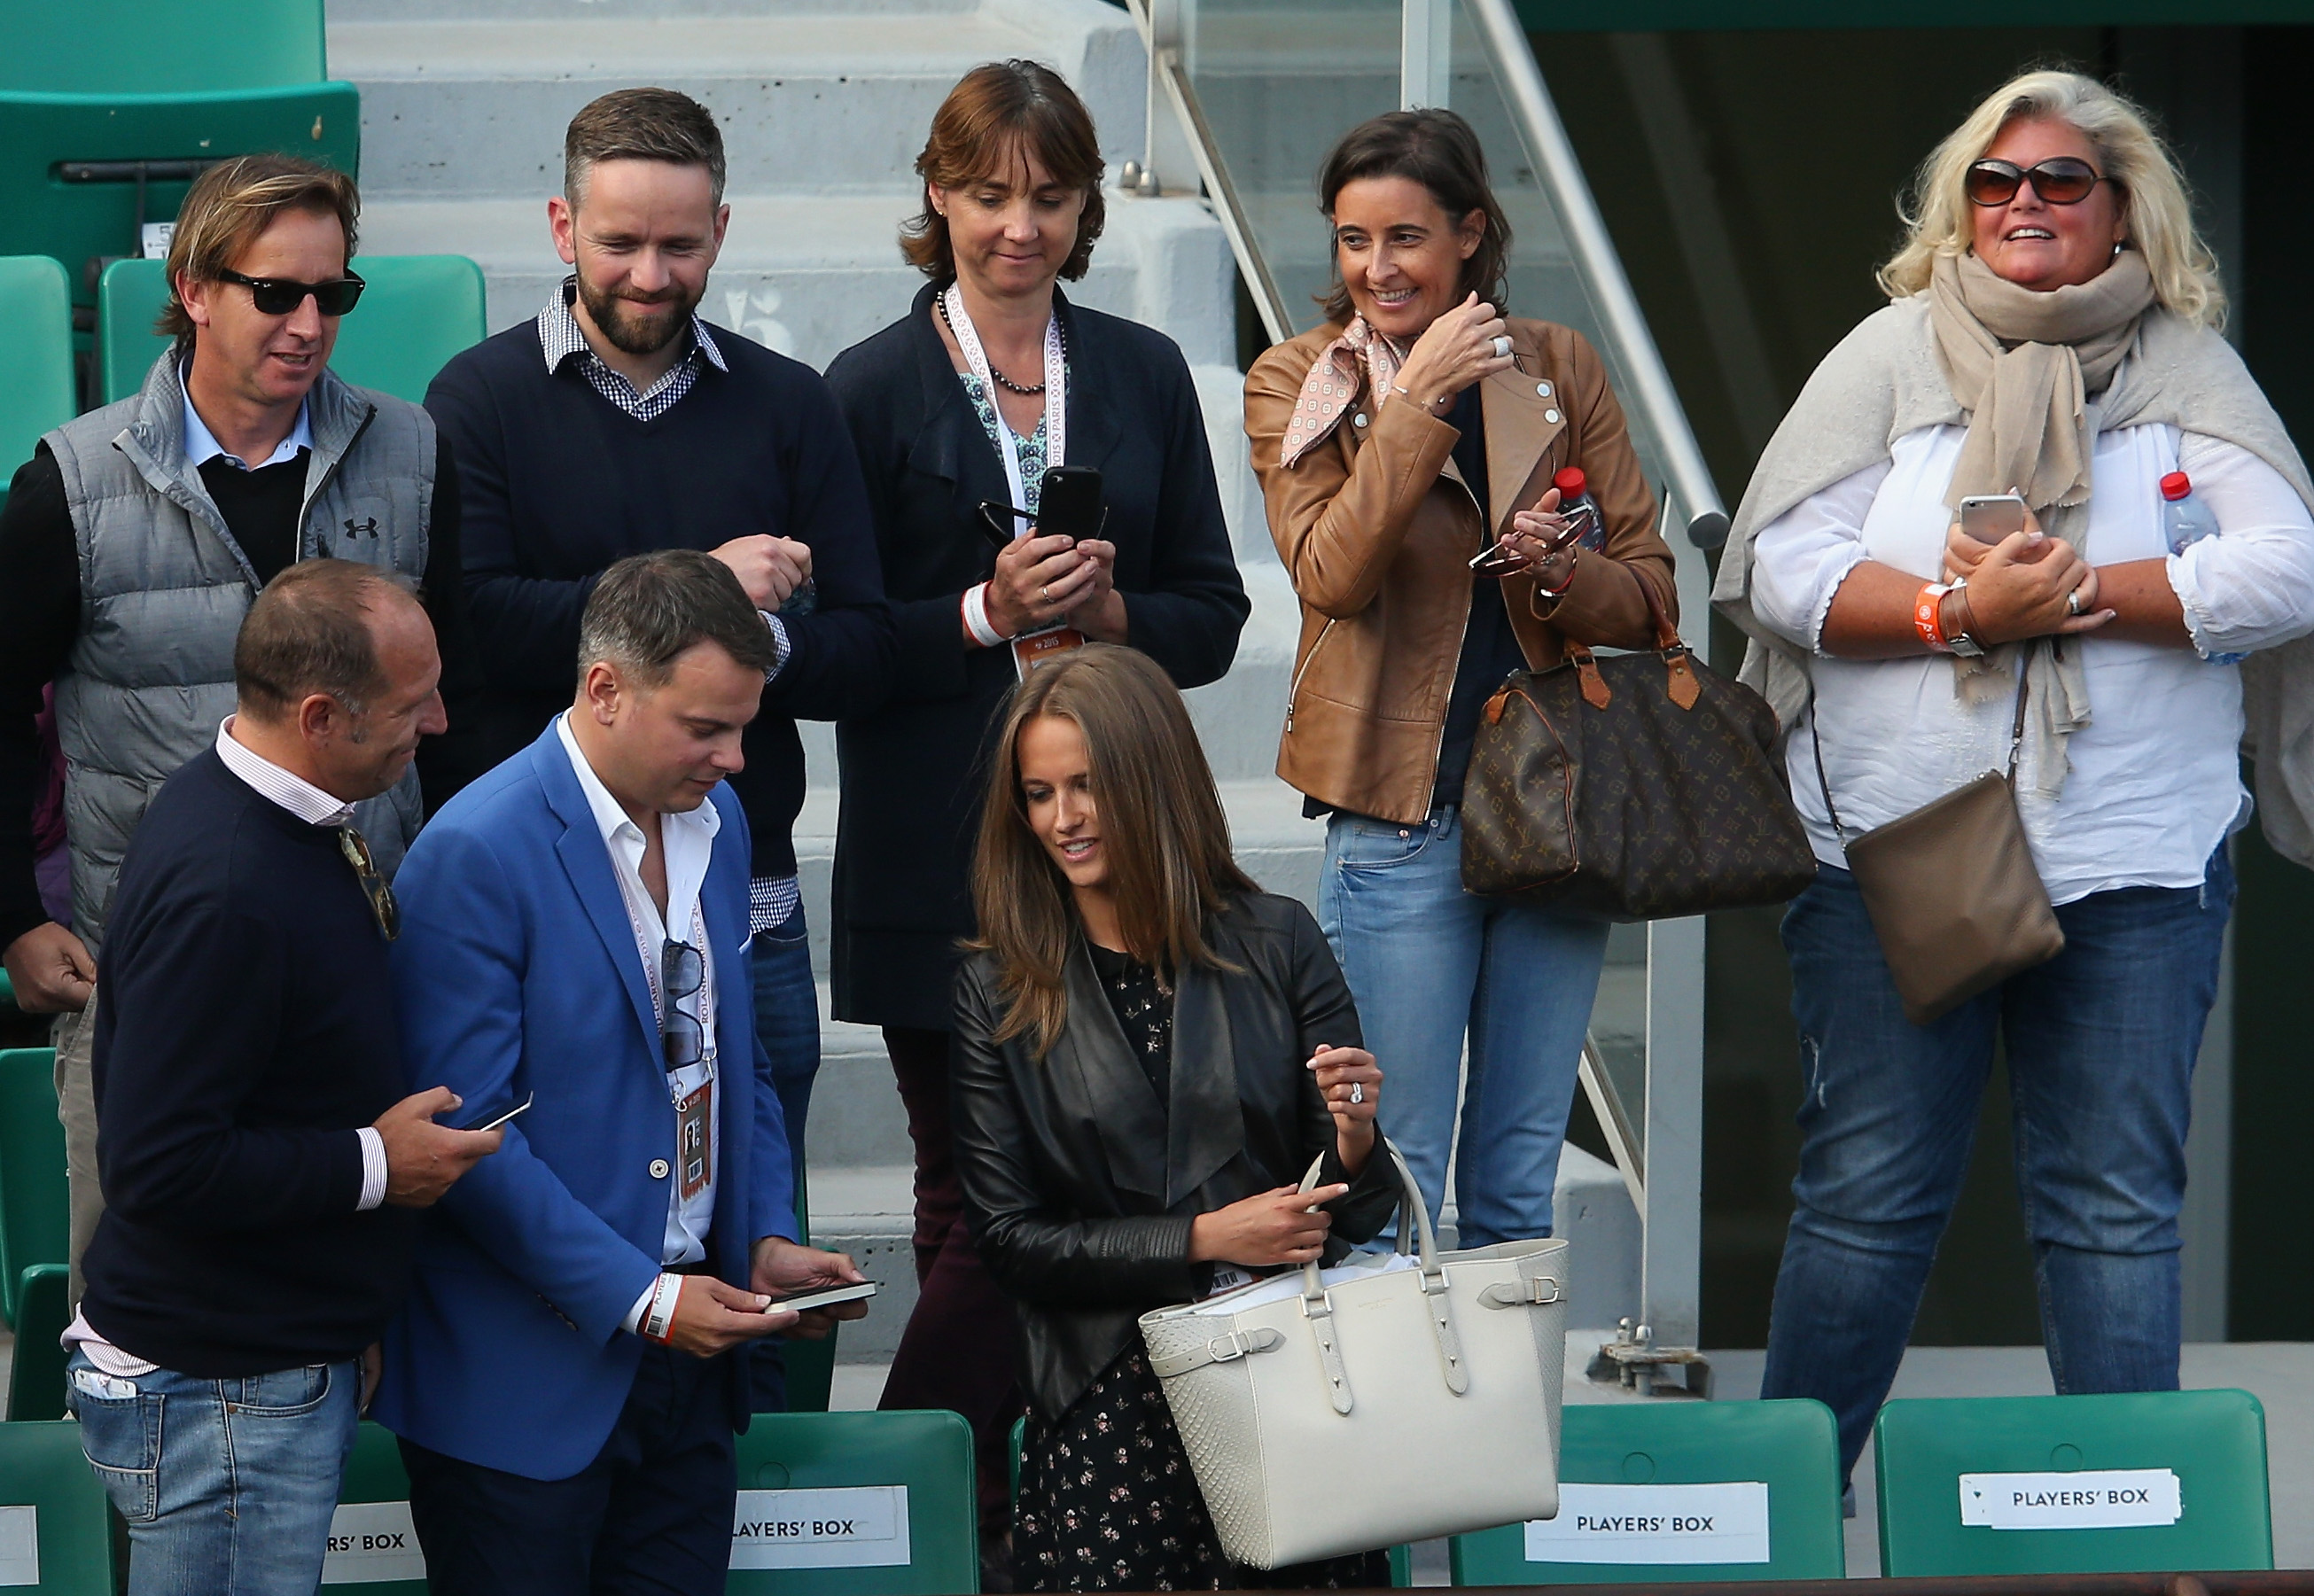 kim Sears Murray at the french open 2015